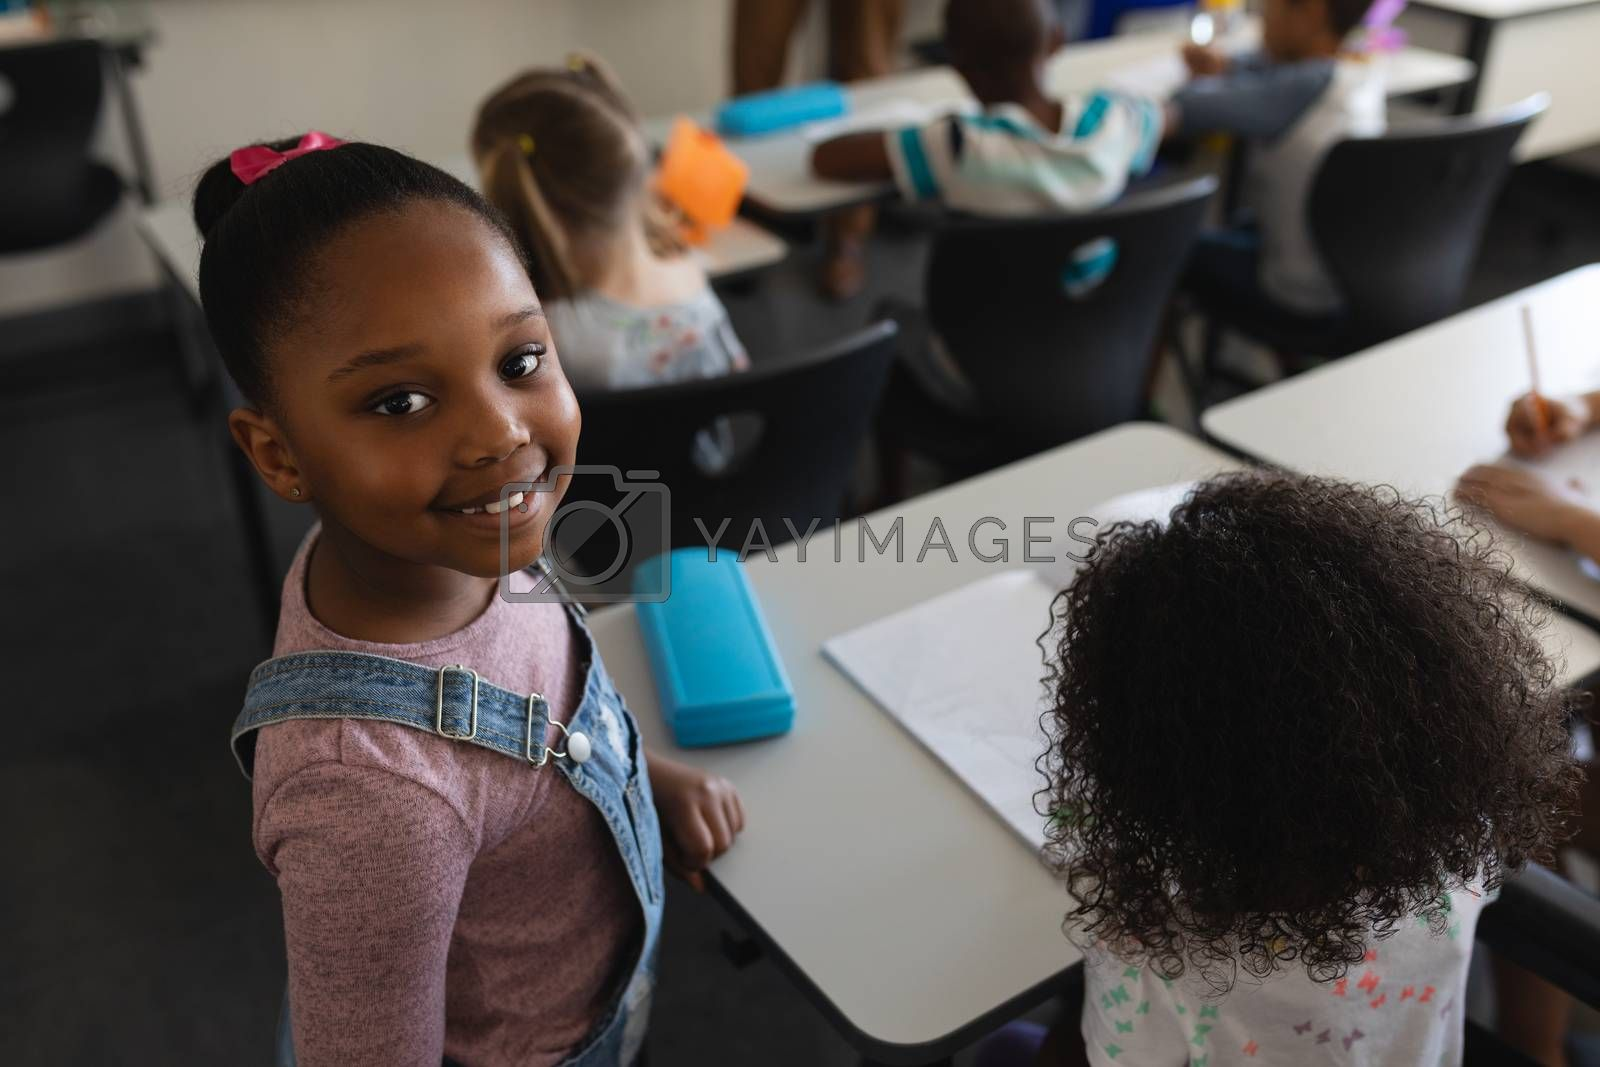 Smiling black schoolgirl standing and looking at camera in classroom by Wavebreakmedia